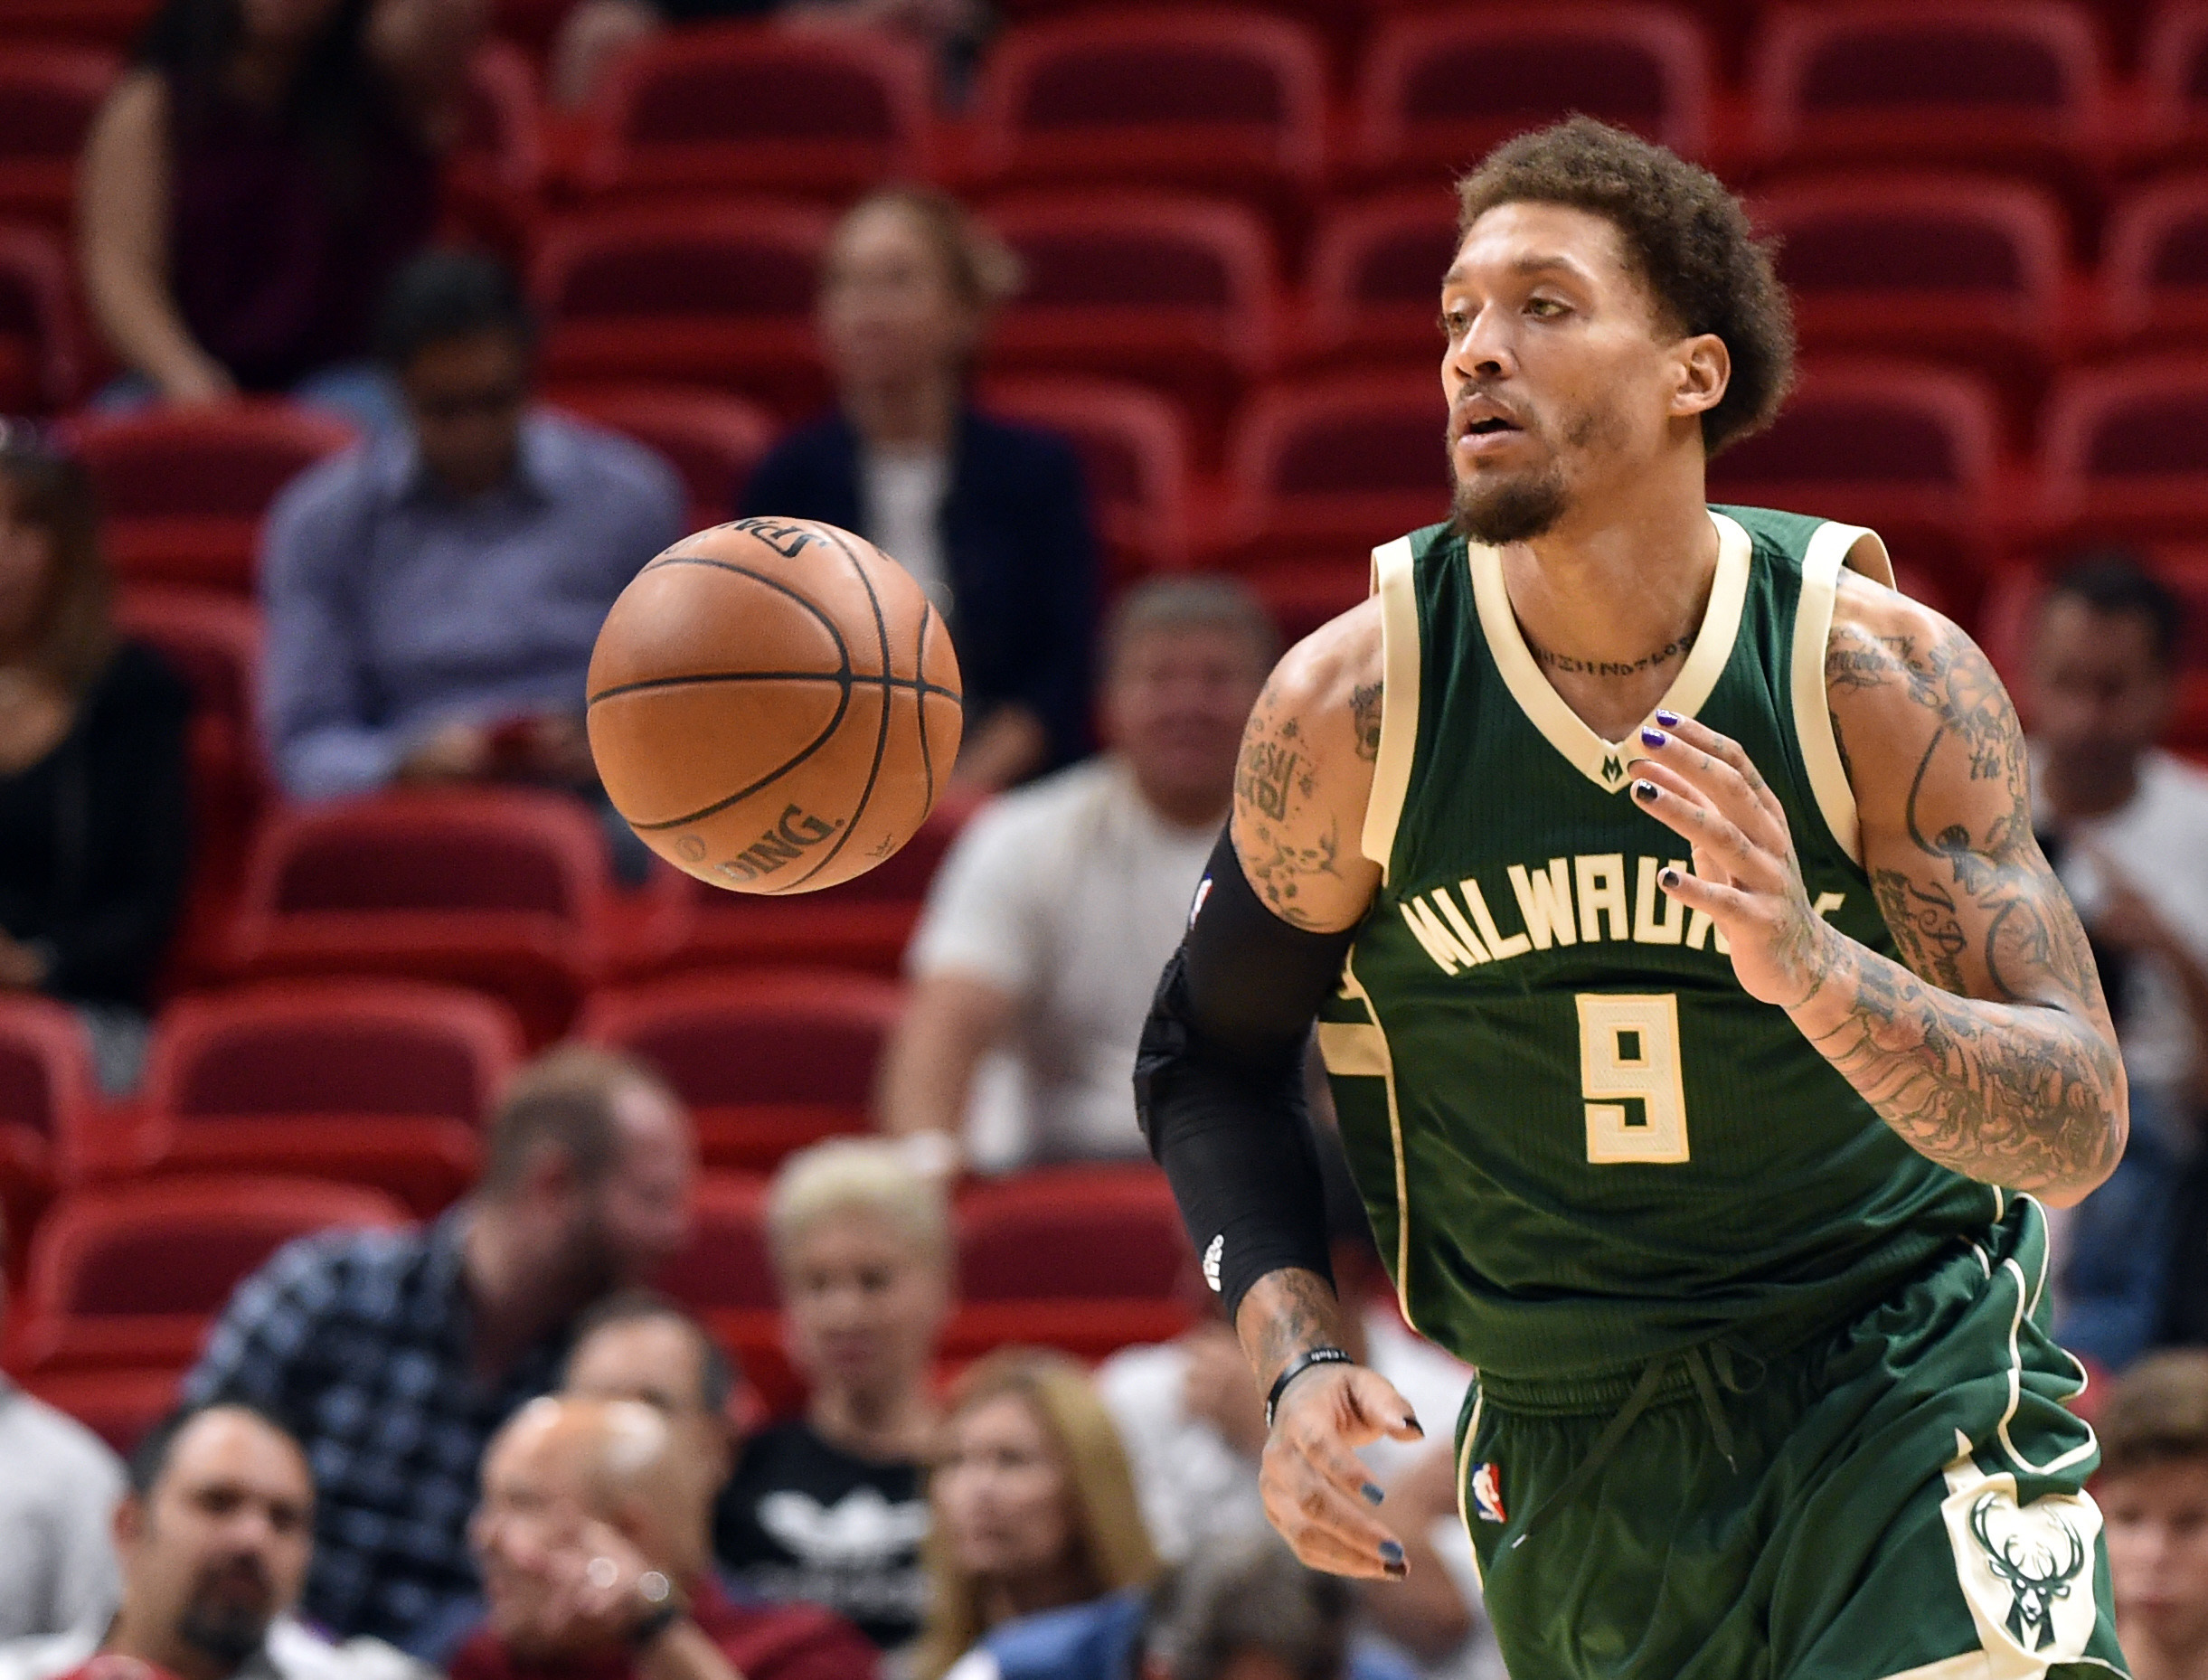 Nov 17, 2016; Miami, FL, USA; Milwaukee Bucks forward Michael Beasley (9) dribbles the ball against the Miami Heat during the first half at American Airlines Arena. Mandatory Credit: Steve Mitchell-USA TODAY Sports